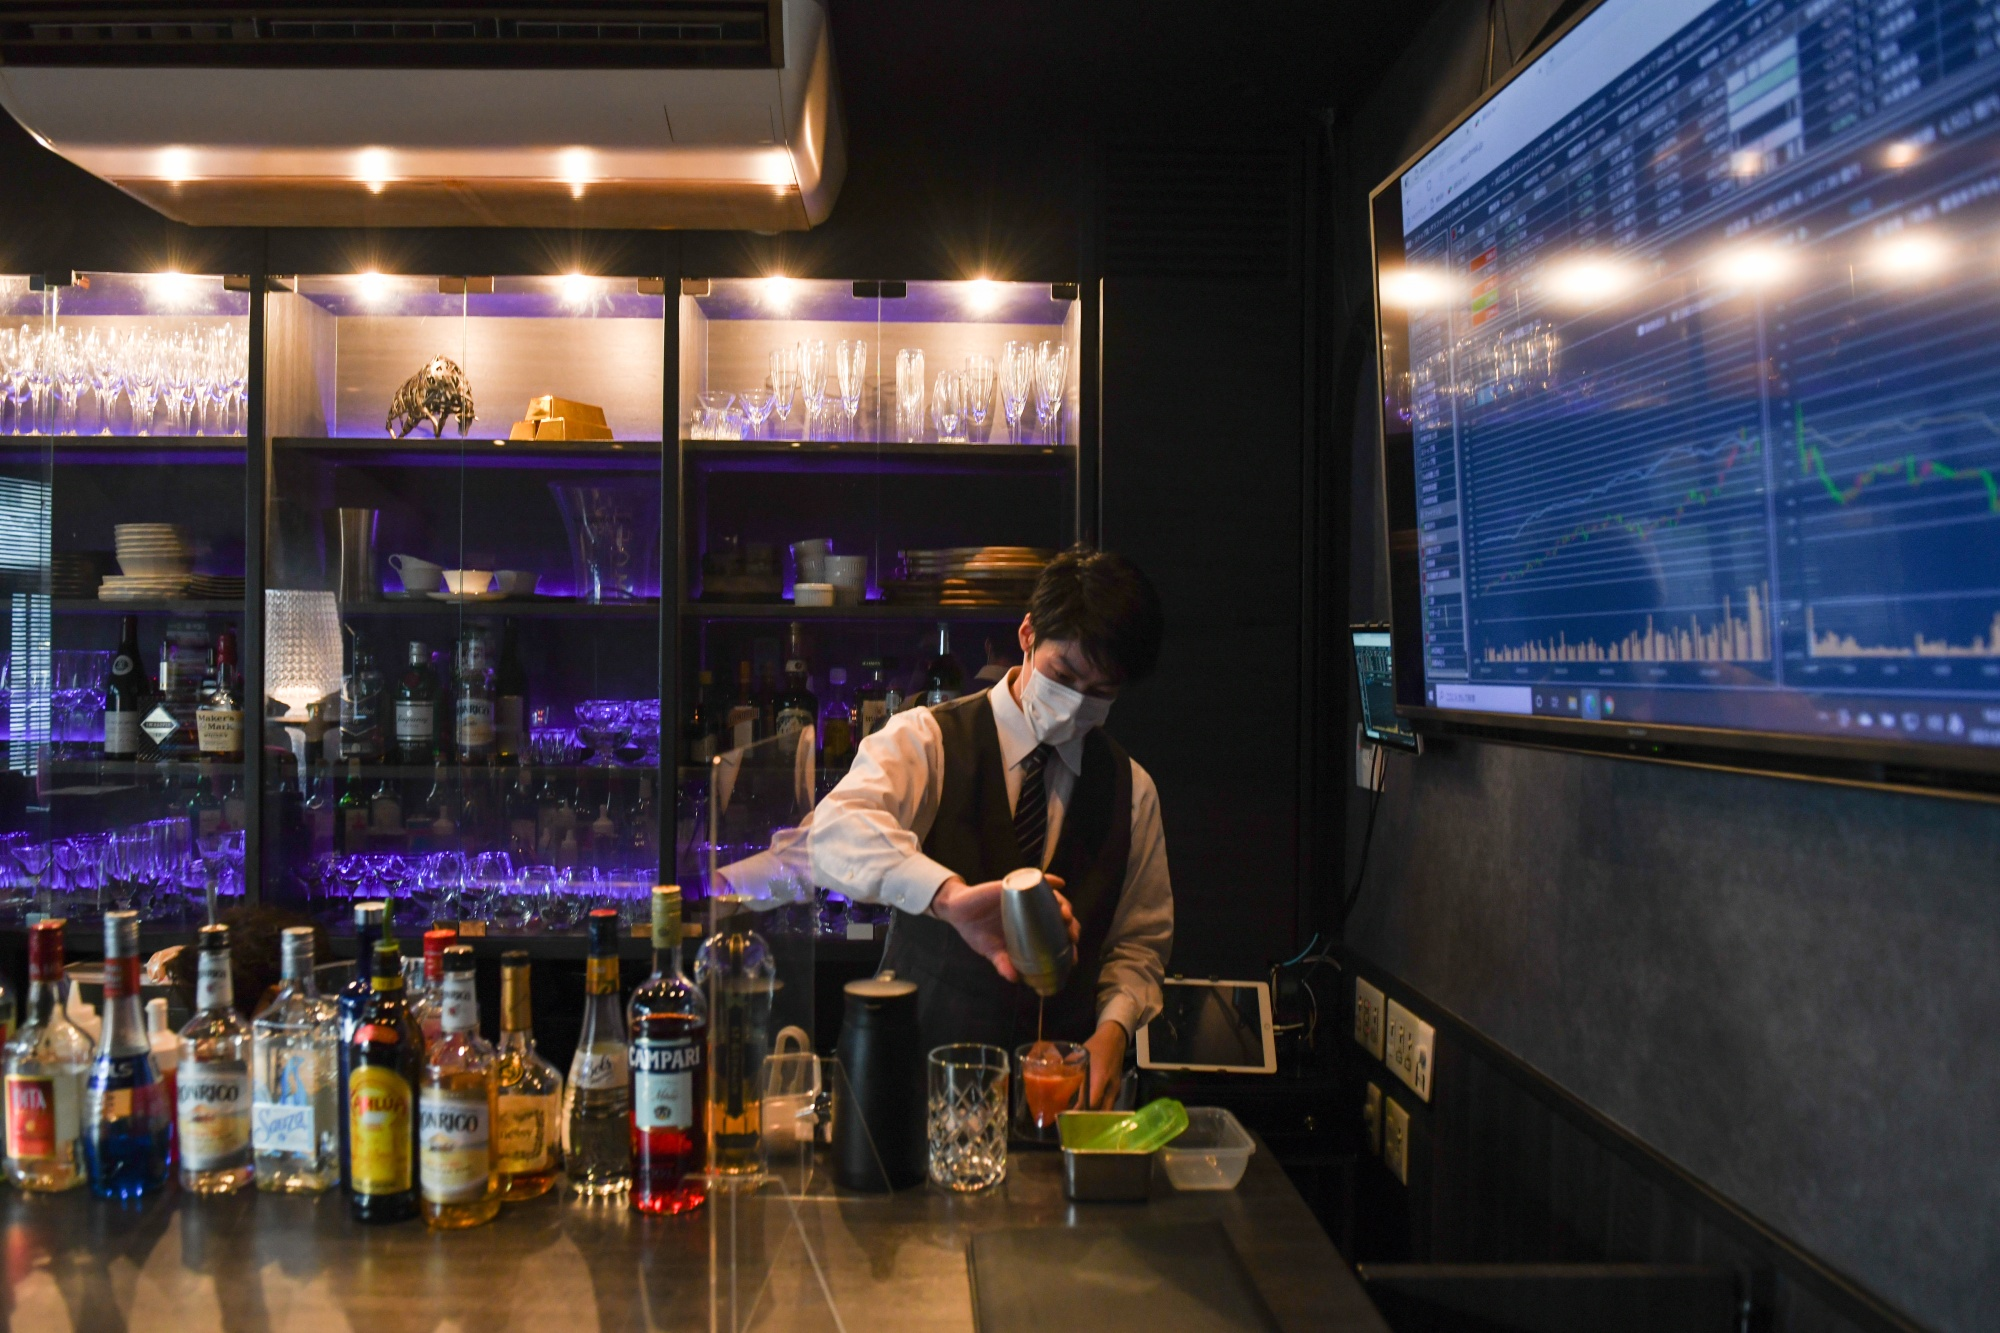 A bartender prepares drinks next to a screen displaying stock quotes and other financial information at Stock Pickers in Tokyo.